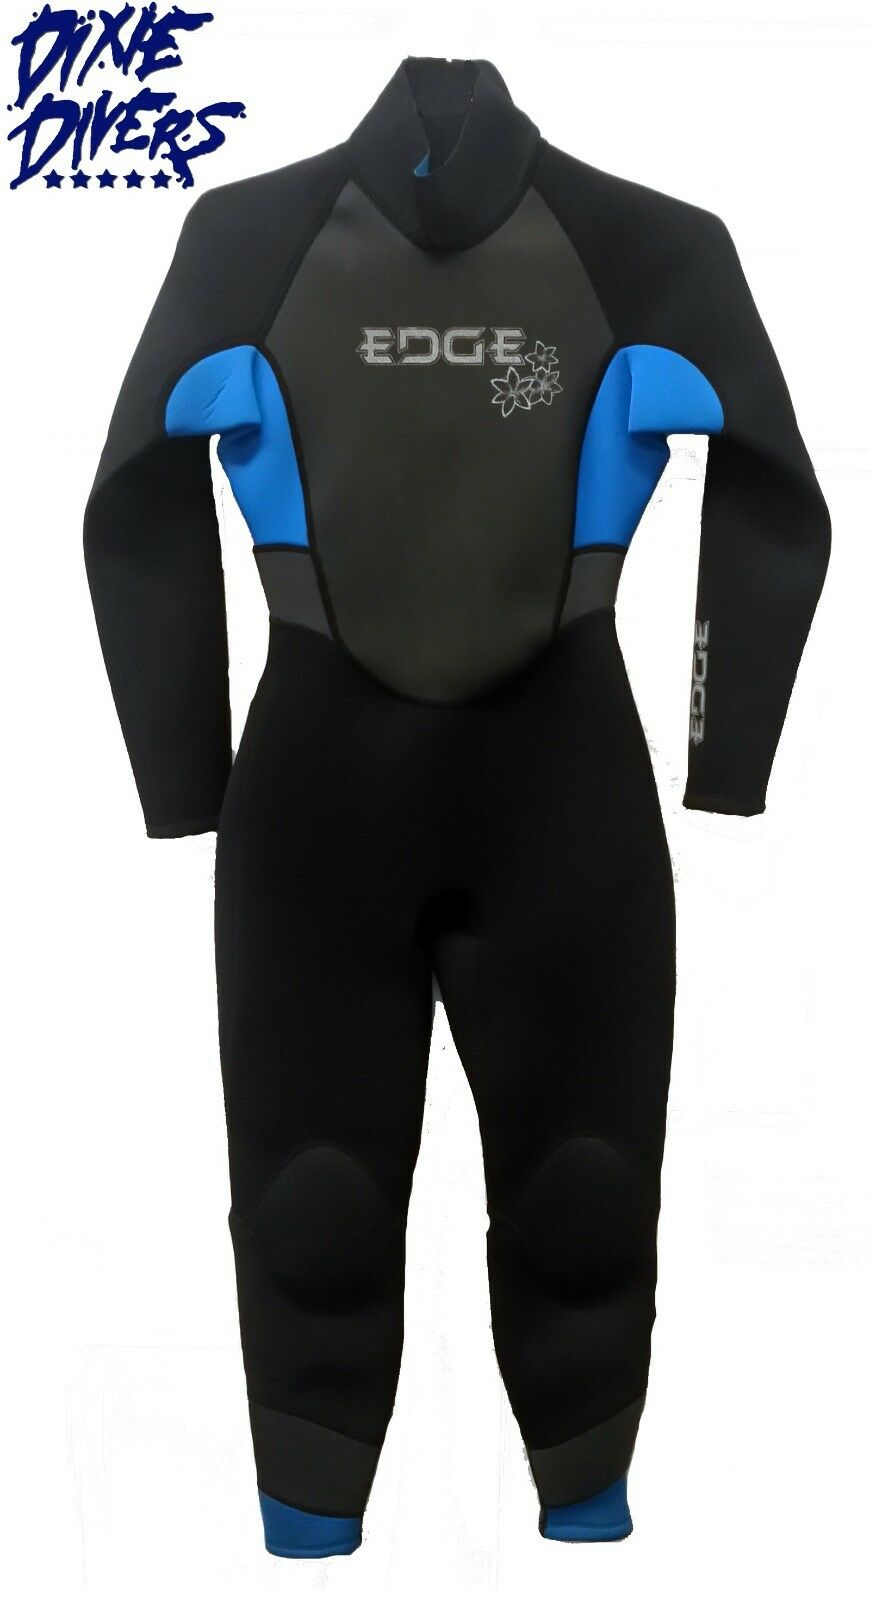 ATLAN FLEXTEC 3 2 mm Womens Jumpsuit Wetsuit Scuba Diving Freediving Size LG(12)